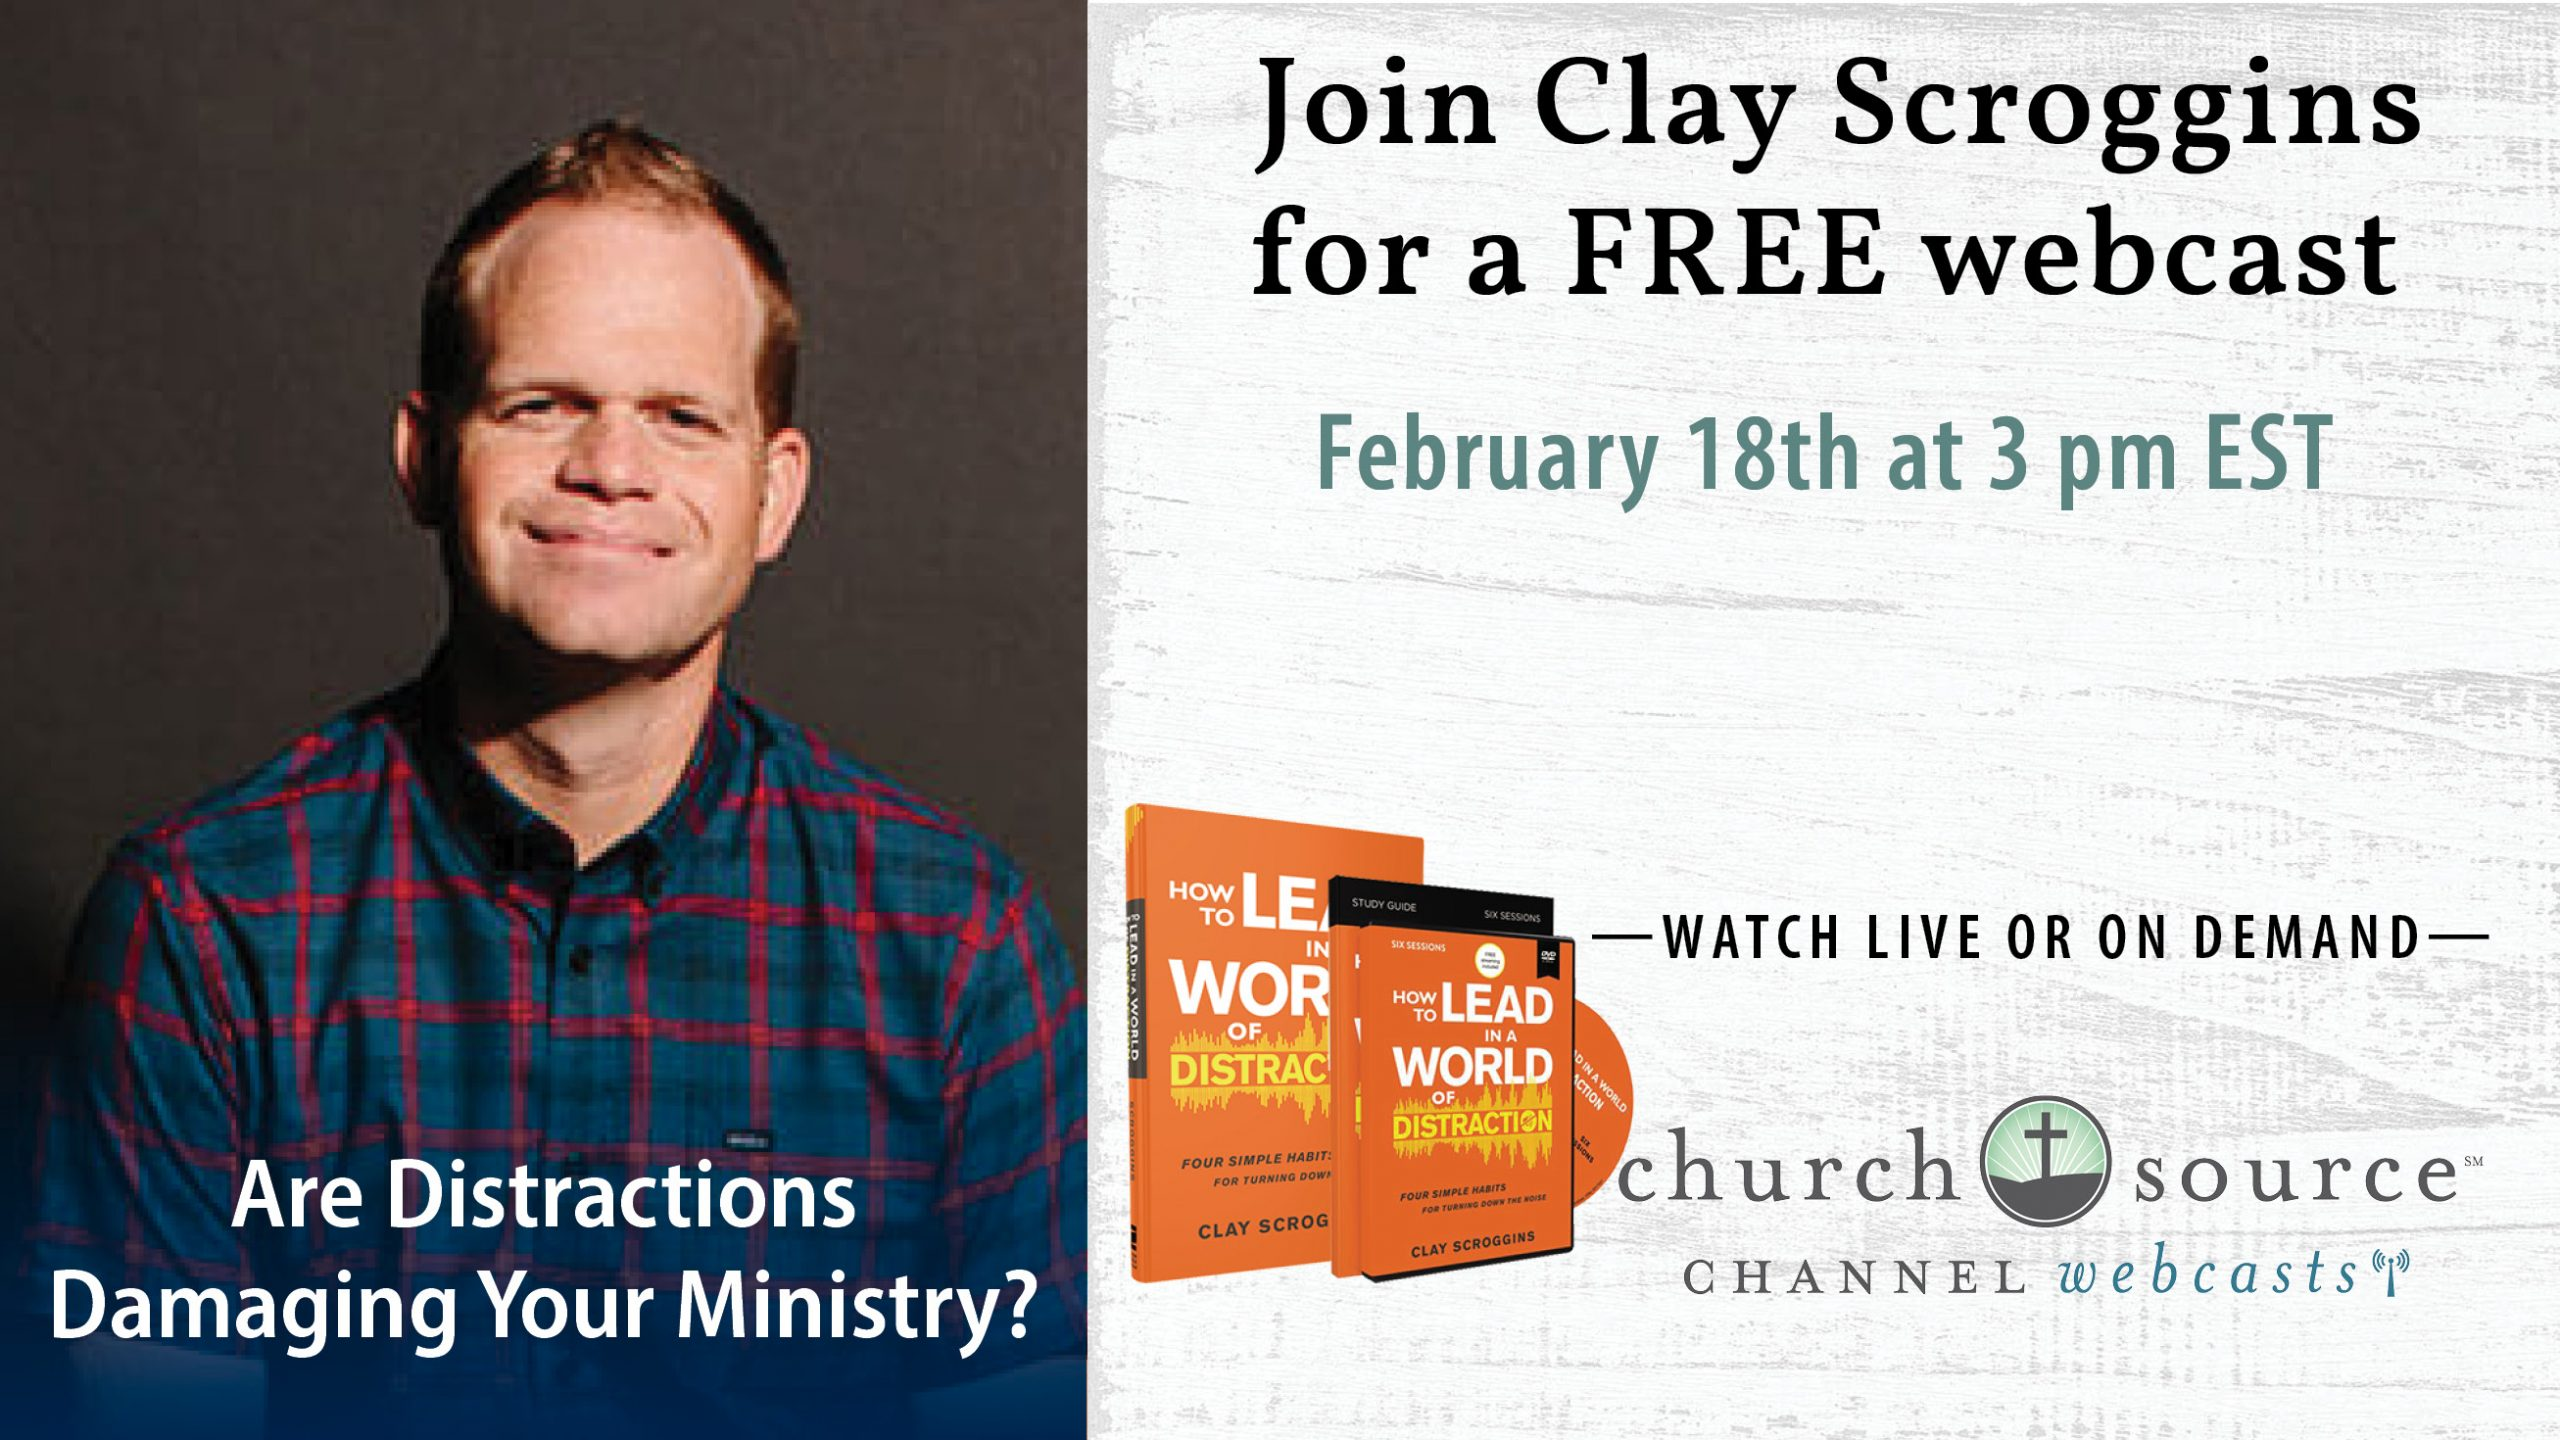 Are Distractions Damaging Your Ministry? - Webcast with Clay Scroggins